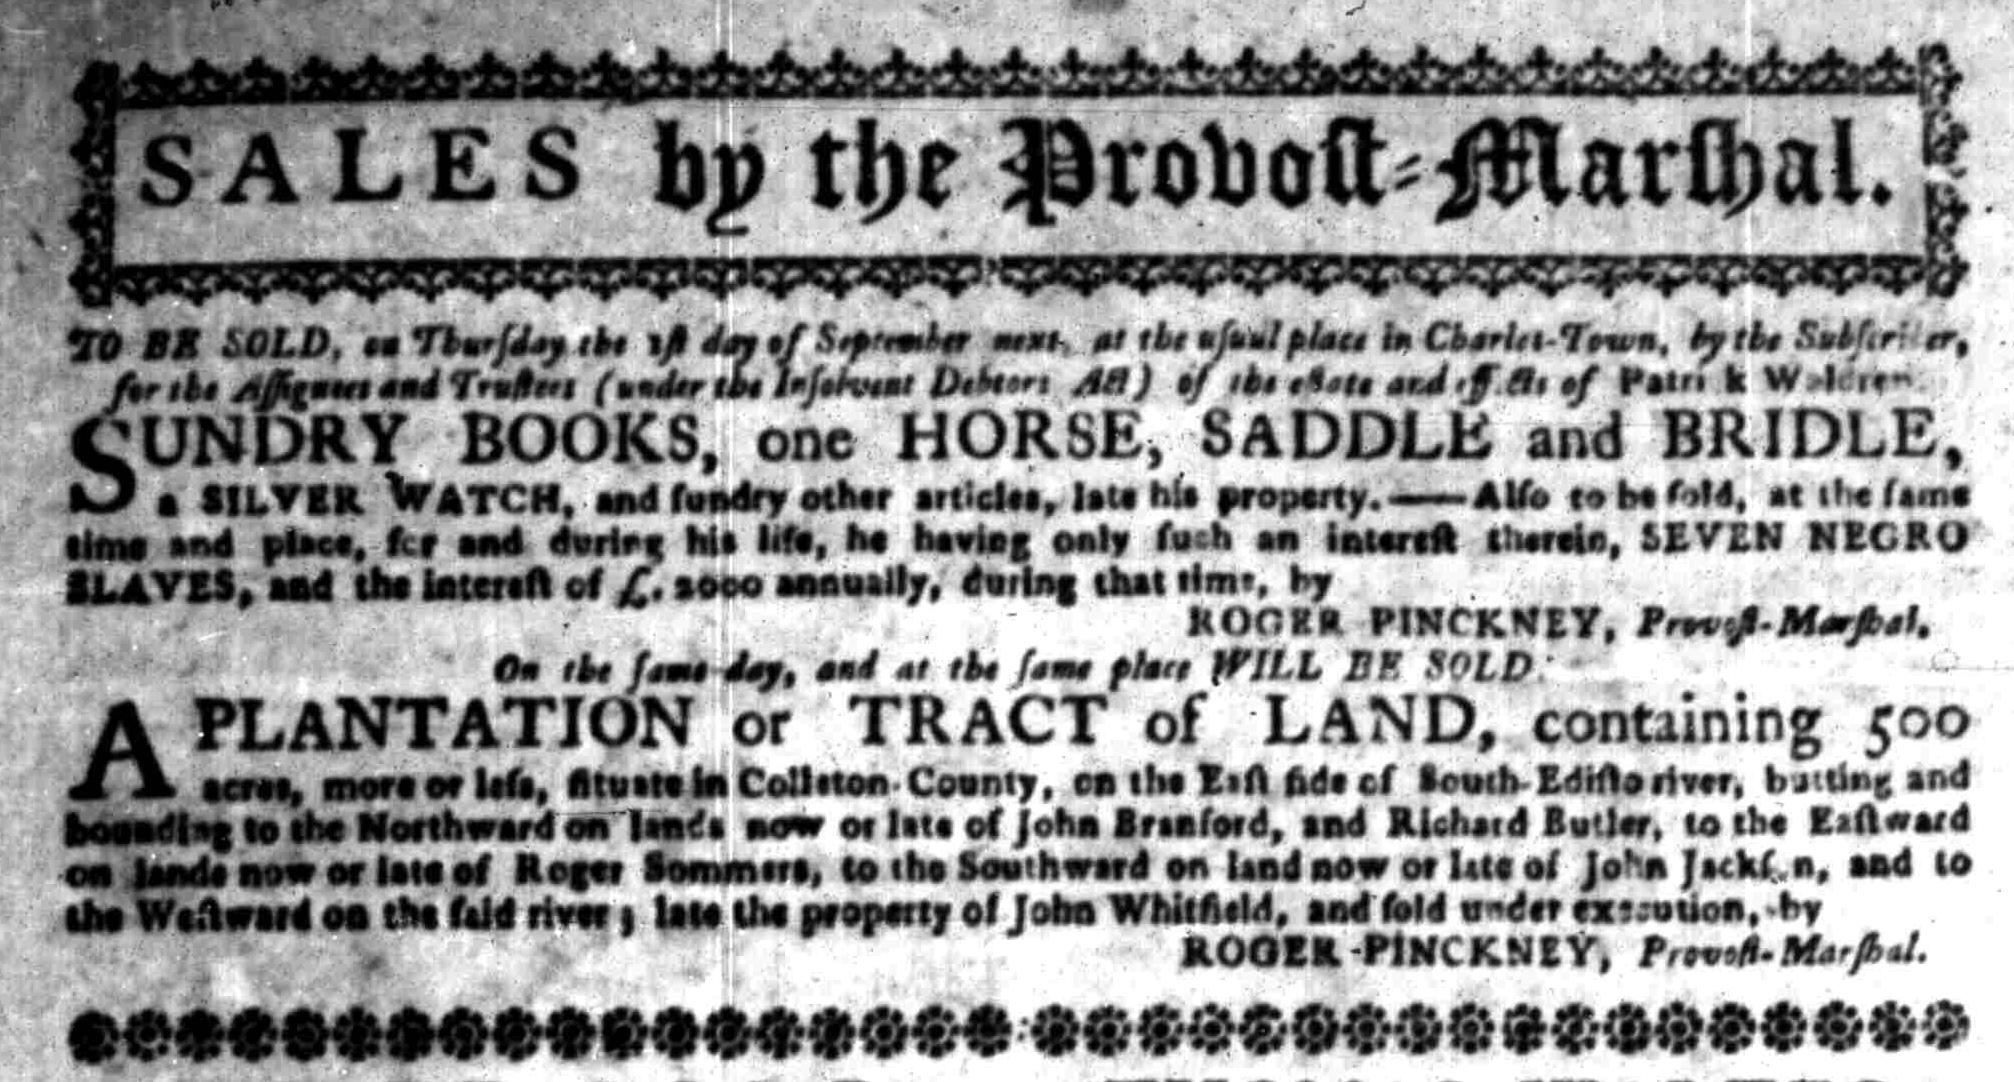 Aug 29 - South-Carolina Gazette Slavery 6